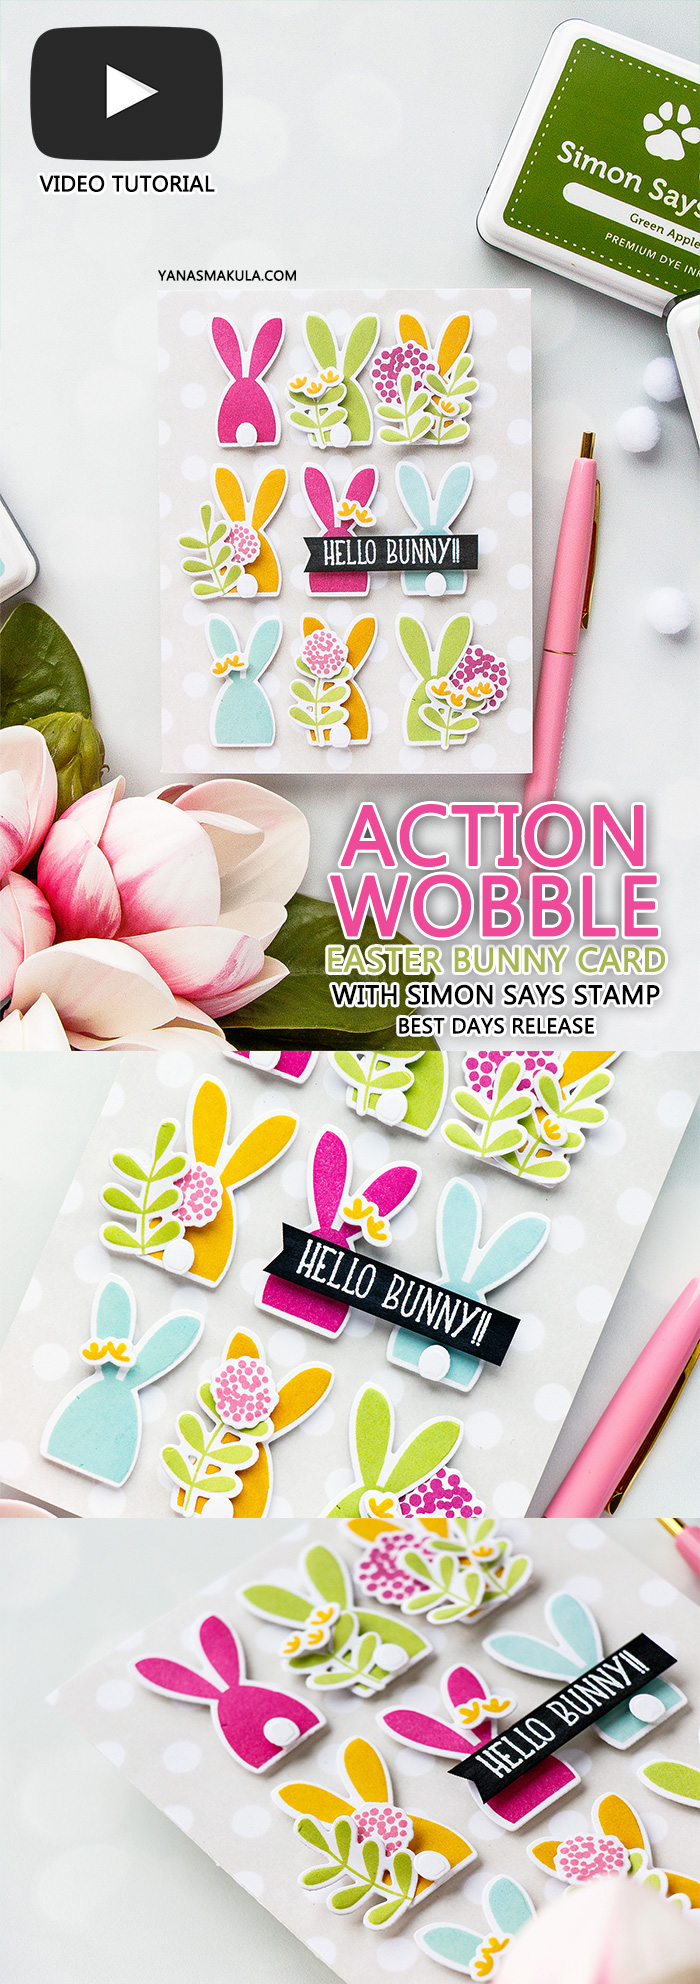 Simon Says Stamp | Action Wobble Happy Easter + Hello Bunny Cards using Oh Bunny sss101812, Reverse Polka Background sss101813 and Bold Flowers sss101811 from Simon Says Stamp #simonsaysstamp #eastercard #springcard #bunnycard #sss #simonsaysbestdays #cardmaking #stamping #diecutting